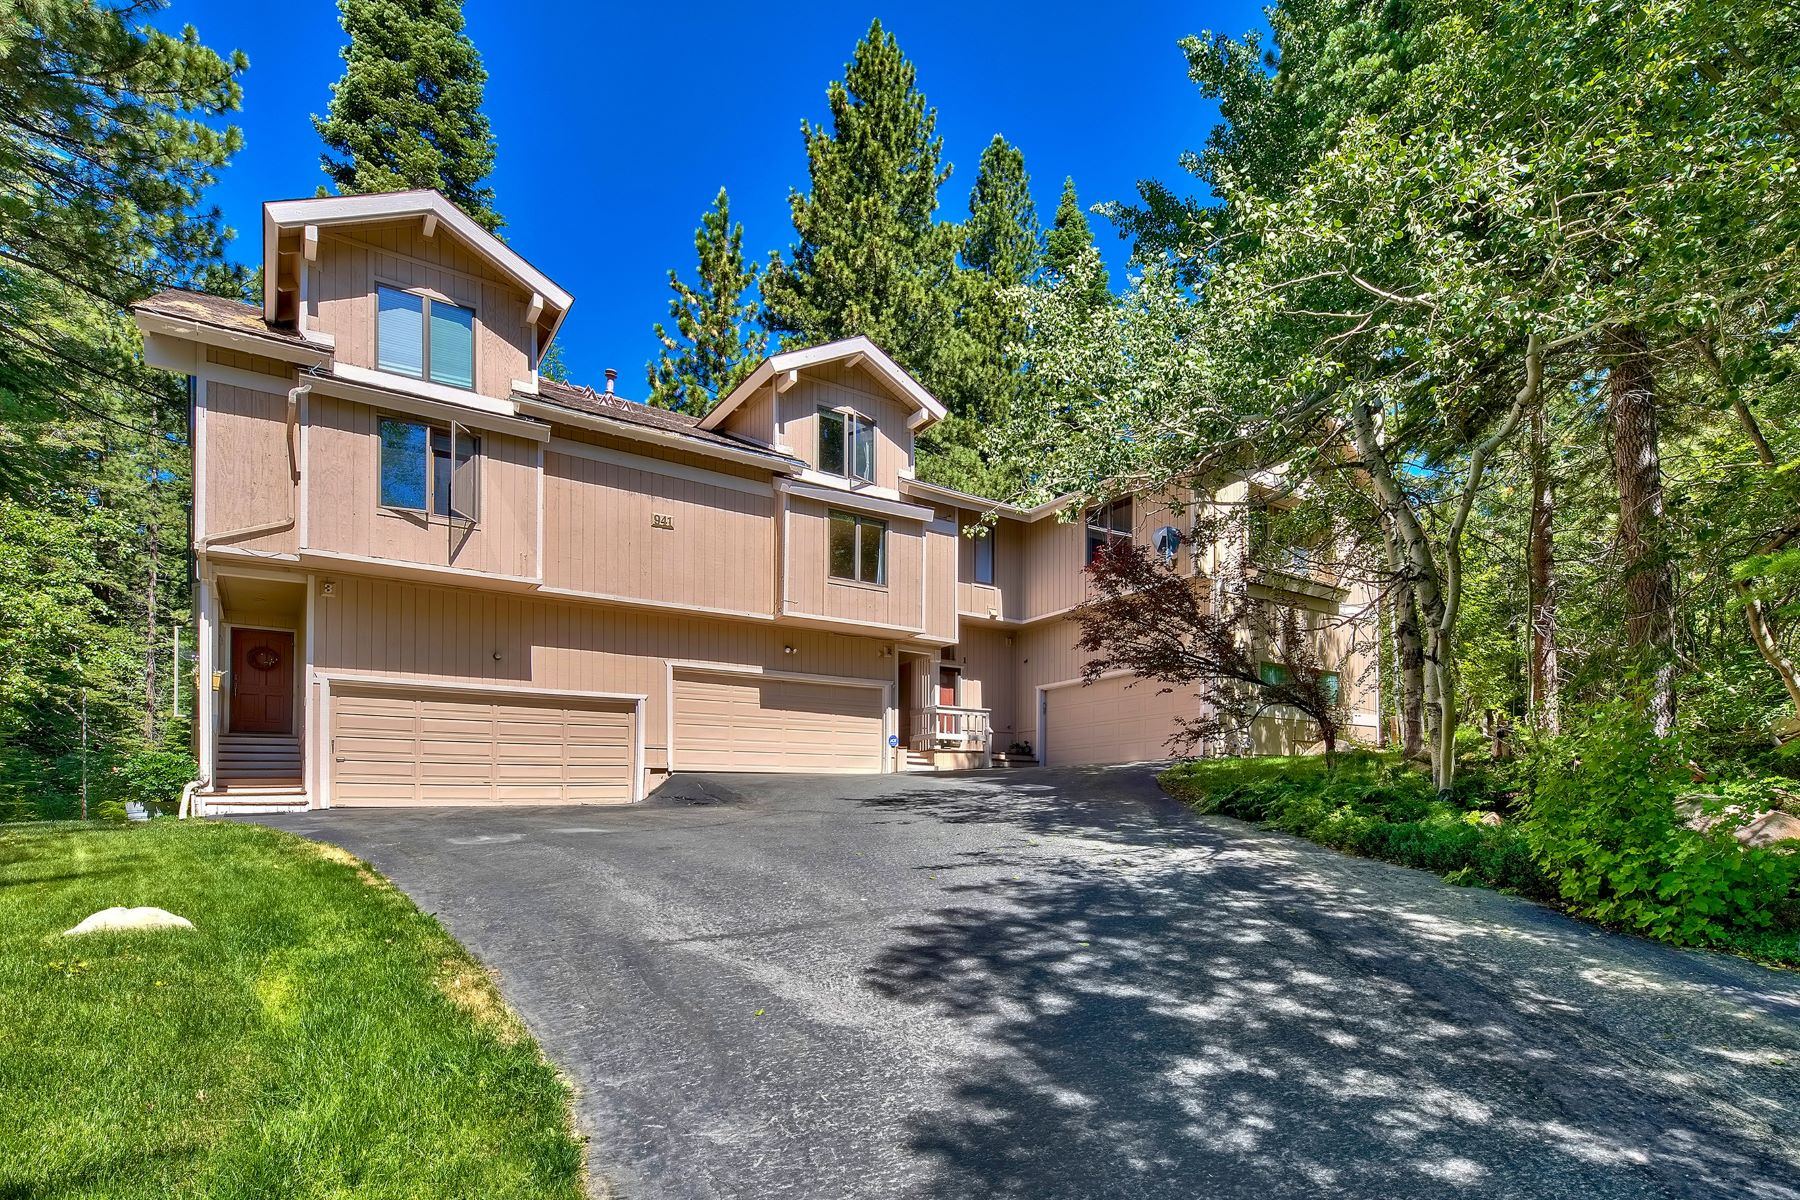 Property 为 销售 在 941 Divot Court #2, Incline Village, NV 89451 941 Divot Court #2 Incline Village, 内华达州 89451 美国